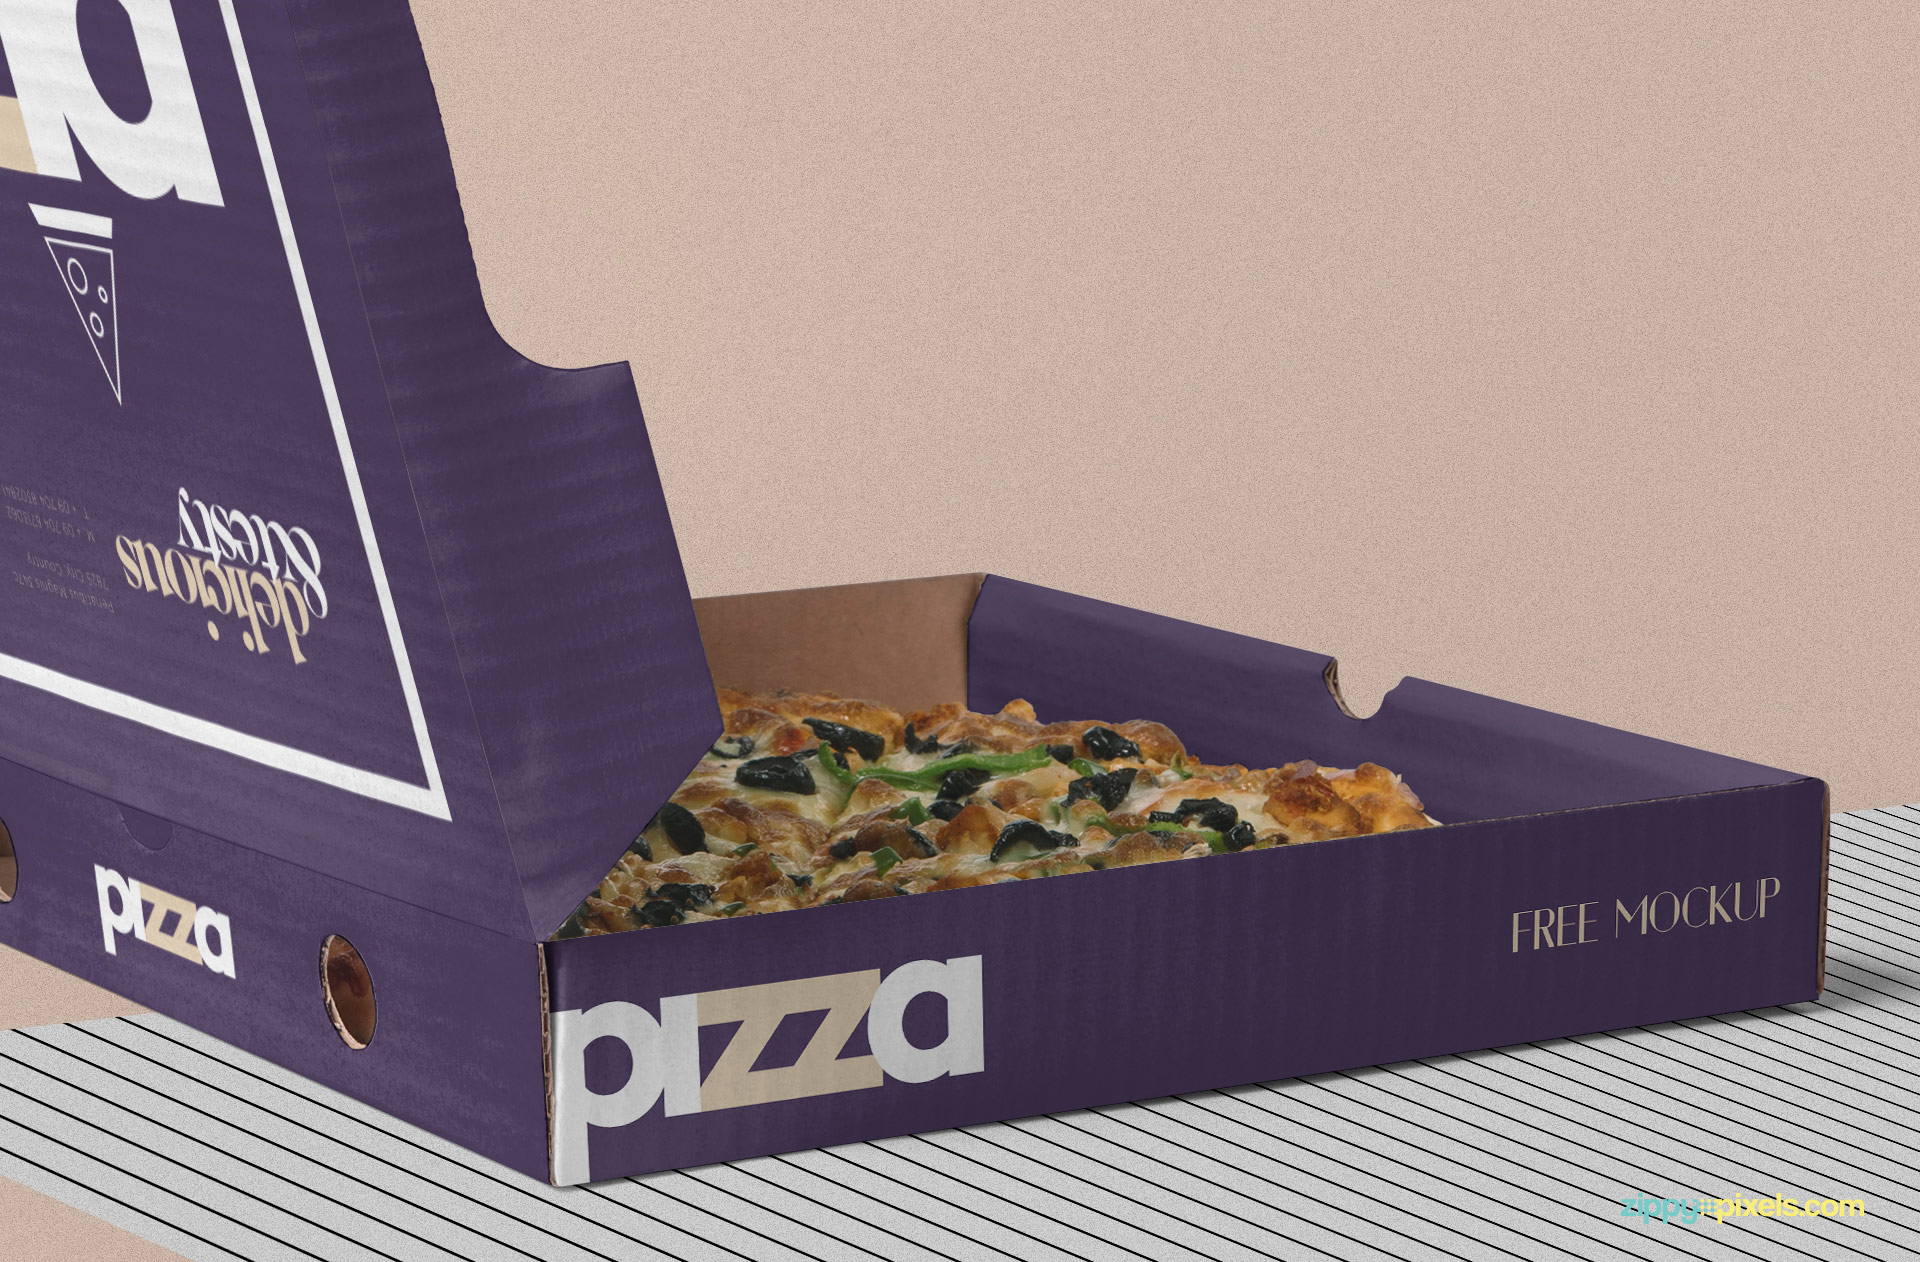 Delicious pizza placed in the box.